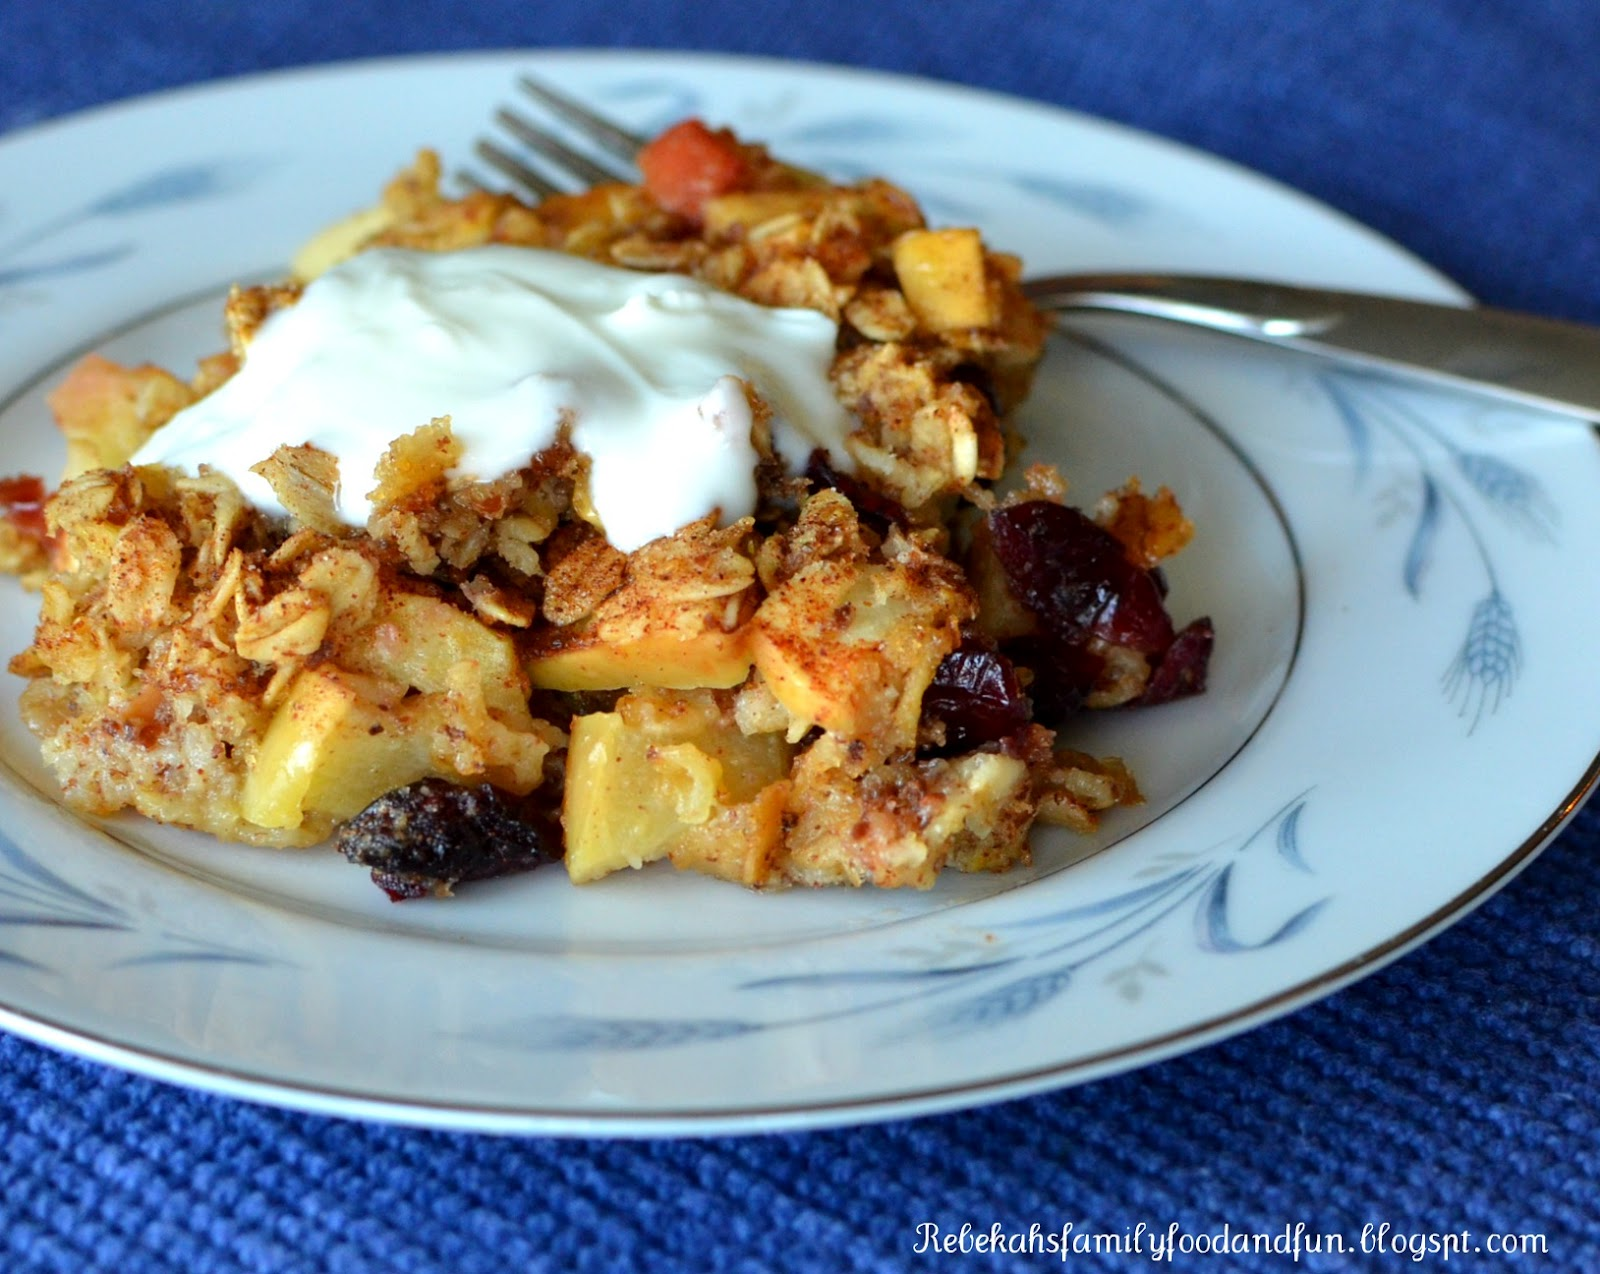 Family, Food, and Fun: Apple Cranberry Baked Oatmeal